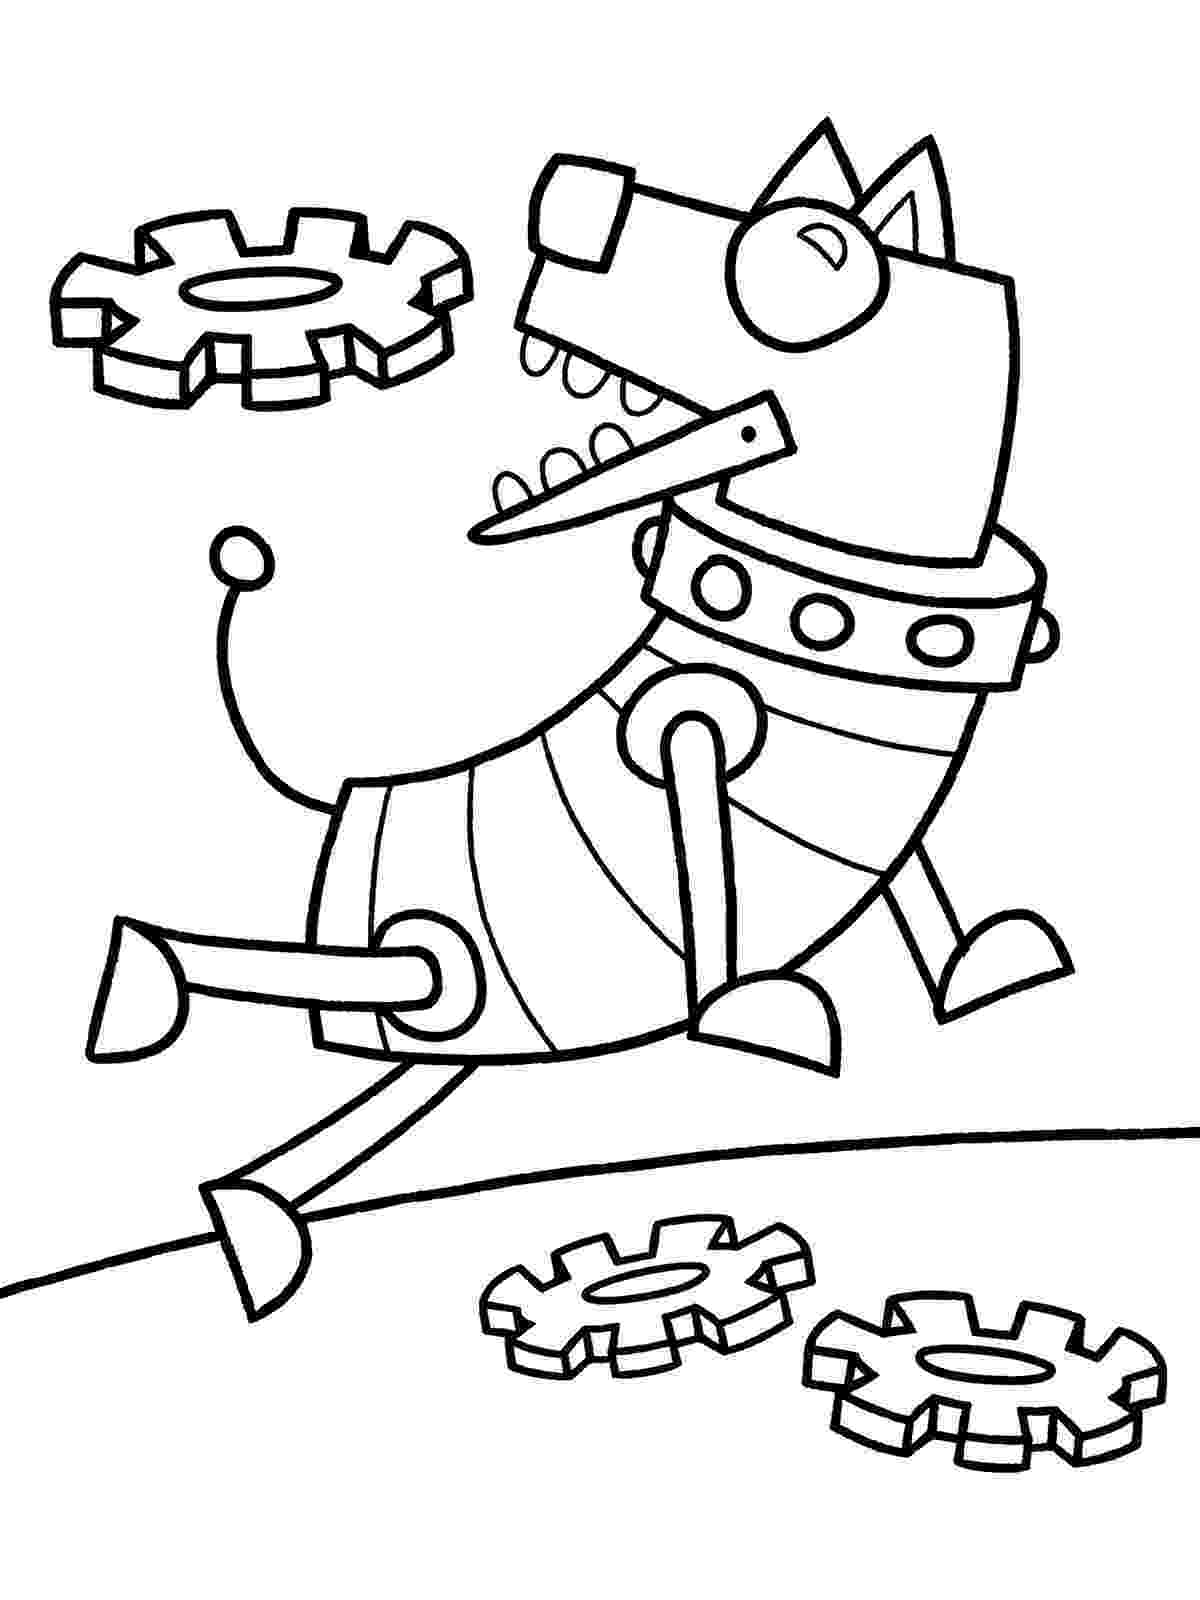 robot coloring sheets robots coloring pages coloring pages coloring pages coloring sheets robot